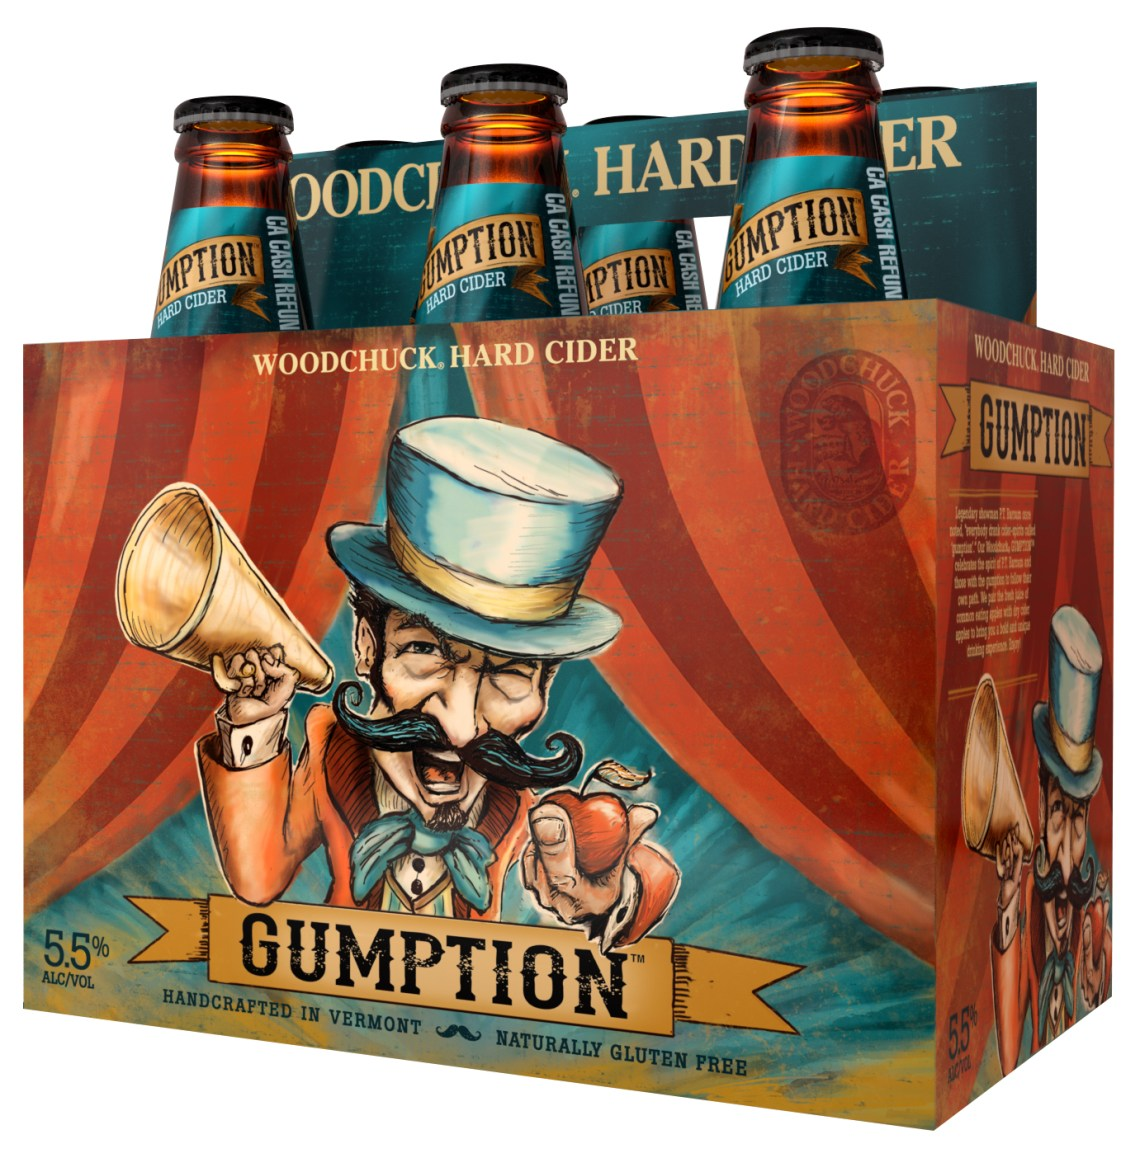 Woodchuck Gumption Hard Cider